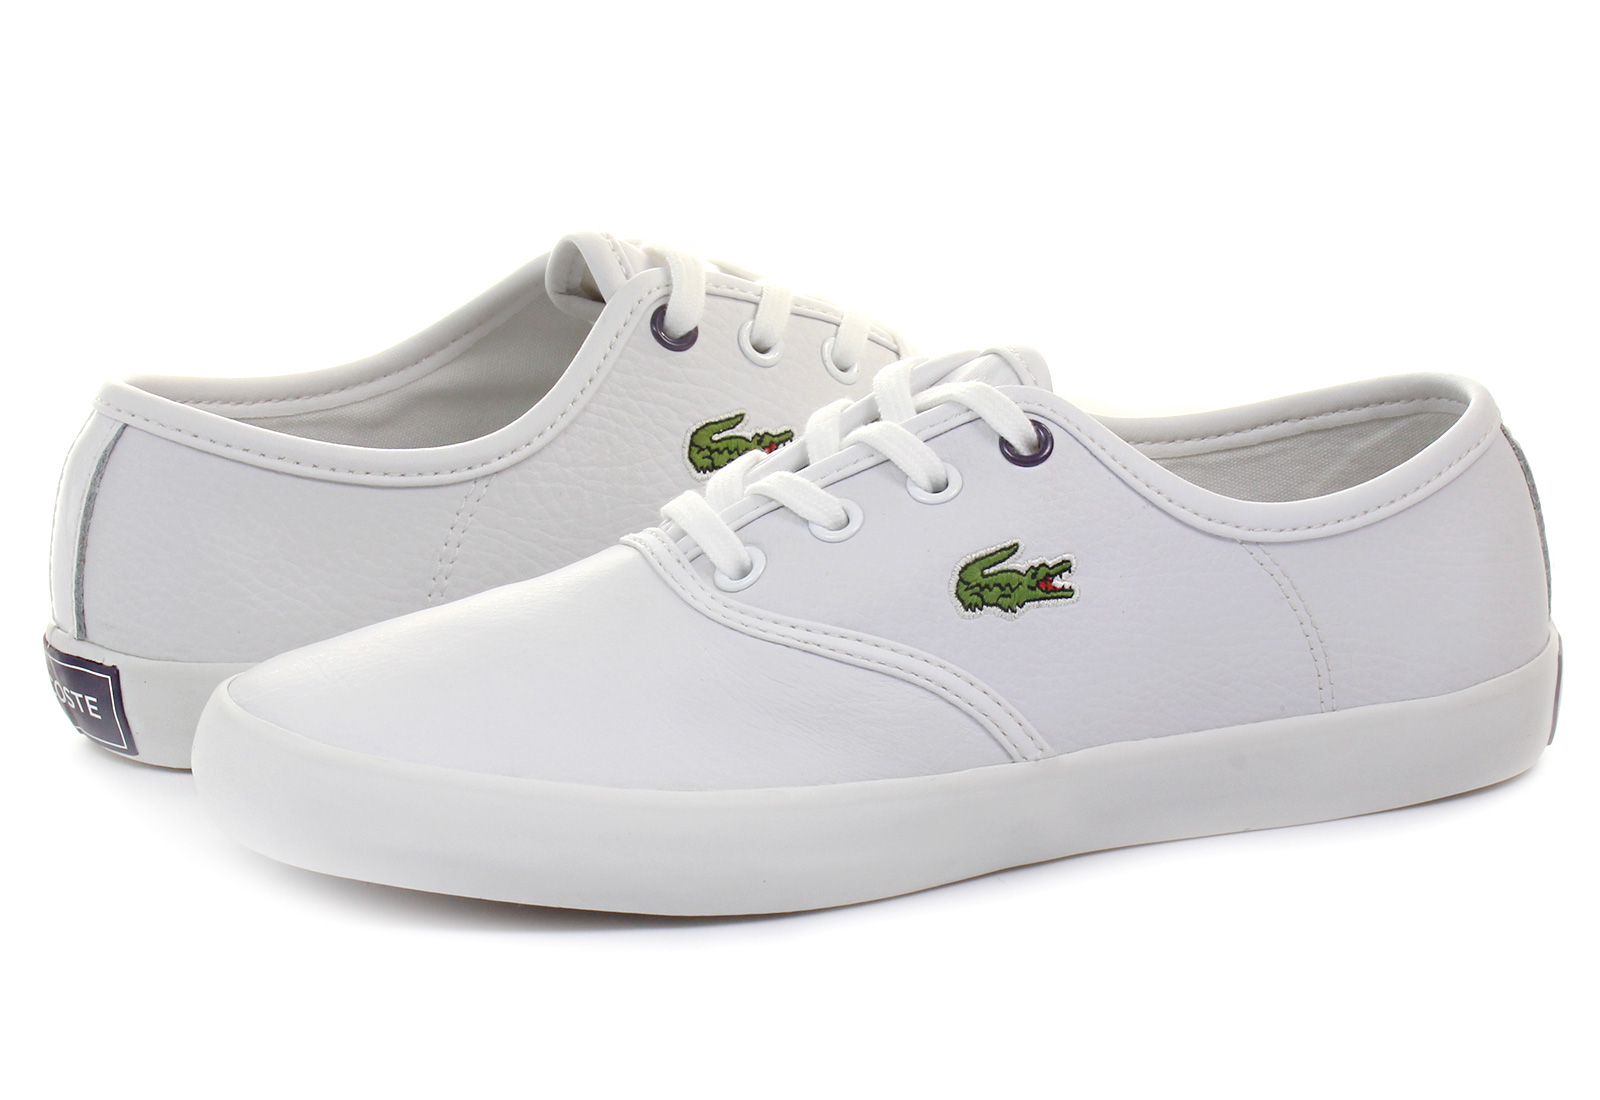 lacoste shoes gambetta 12f22151s6 online shop for